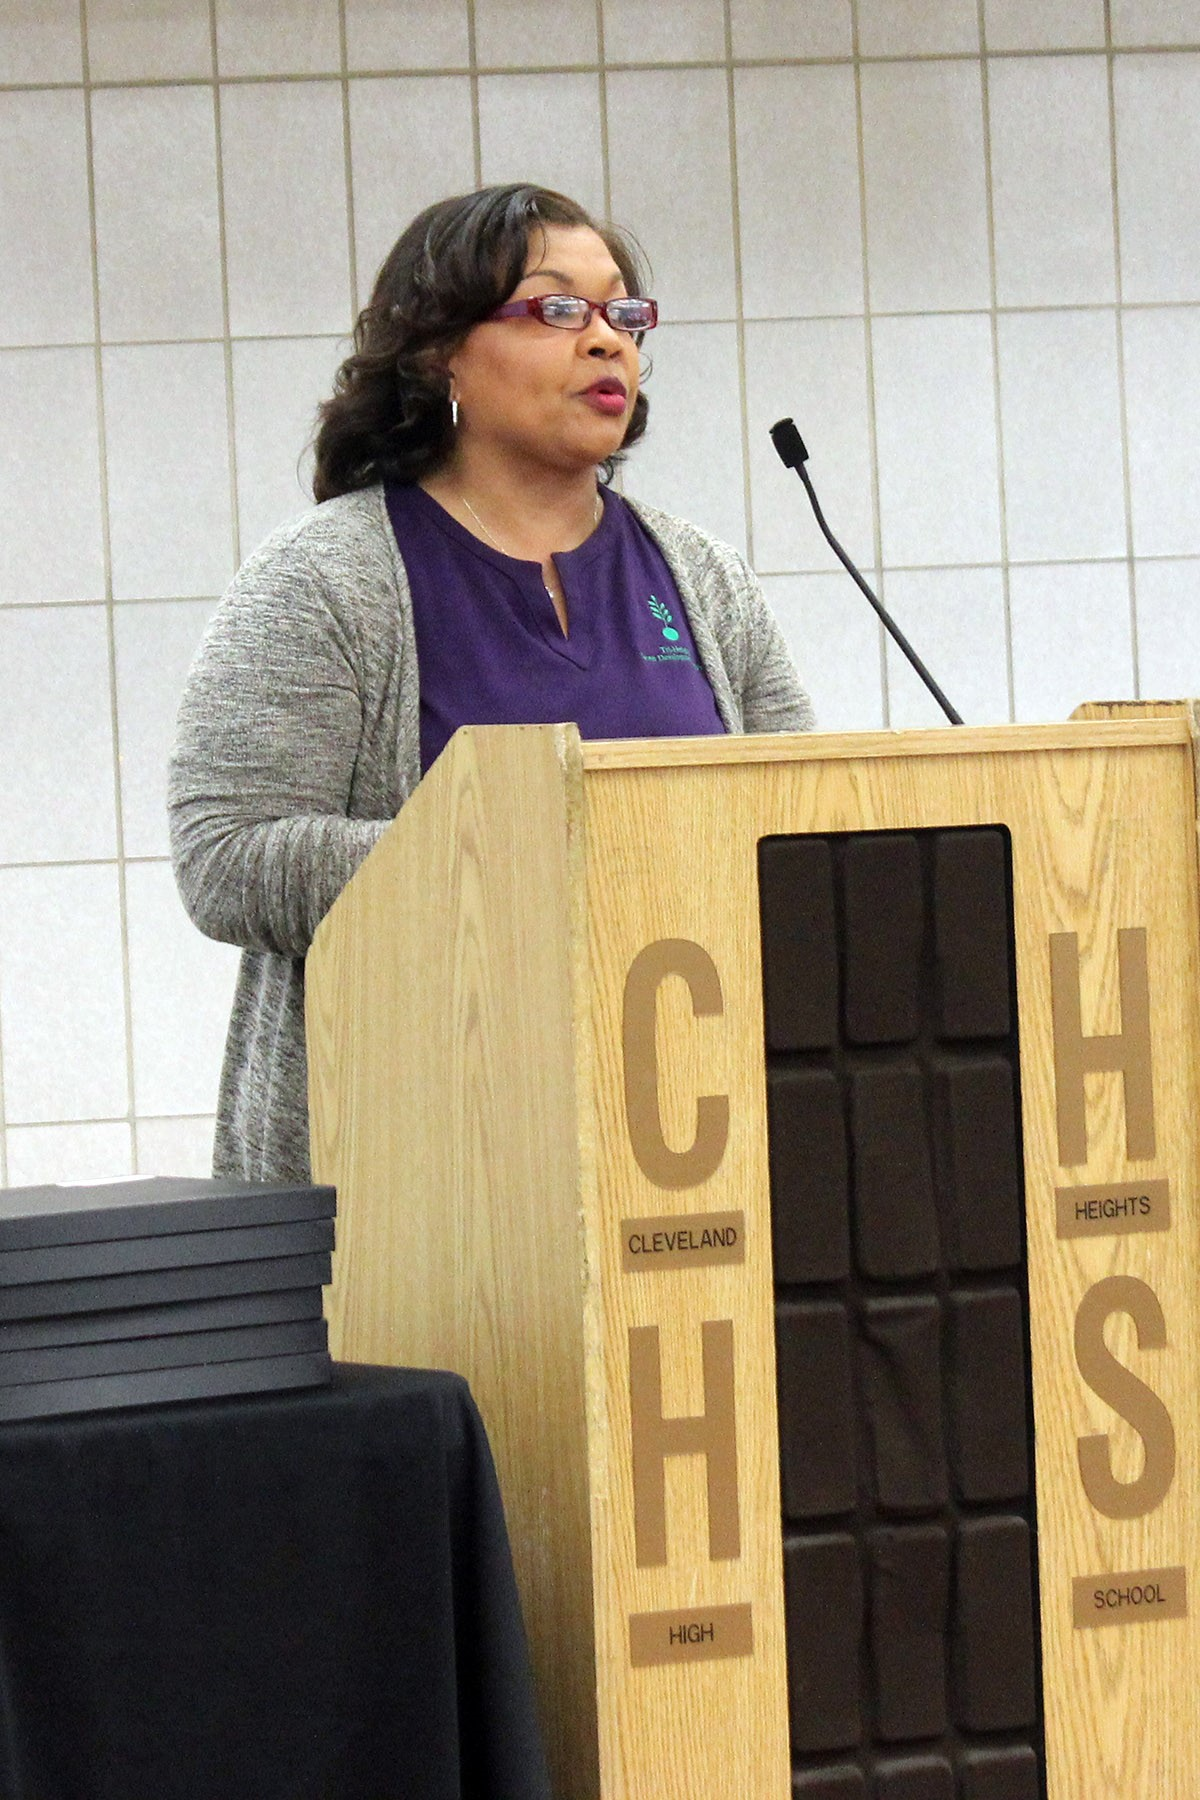 Career Development Coordinator Michelle Phelps spoke about the Tri Heights Consortium's Career Connections program.